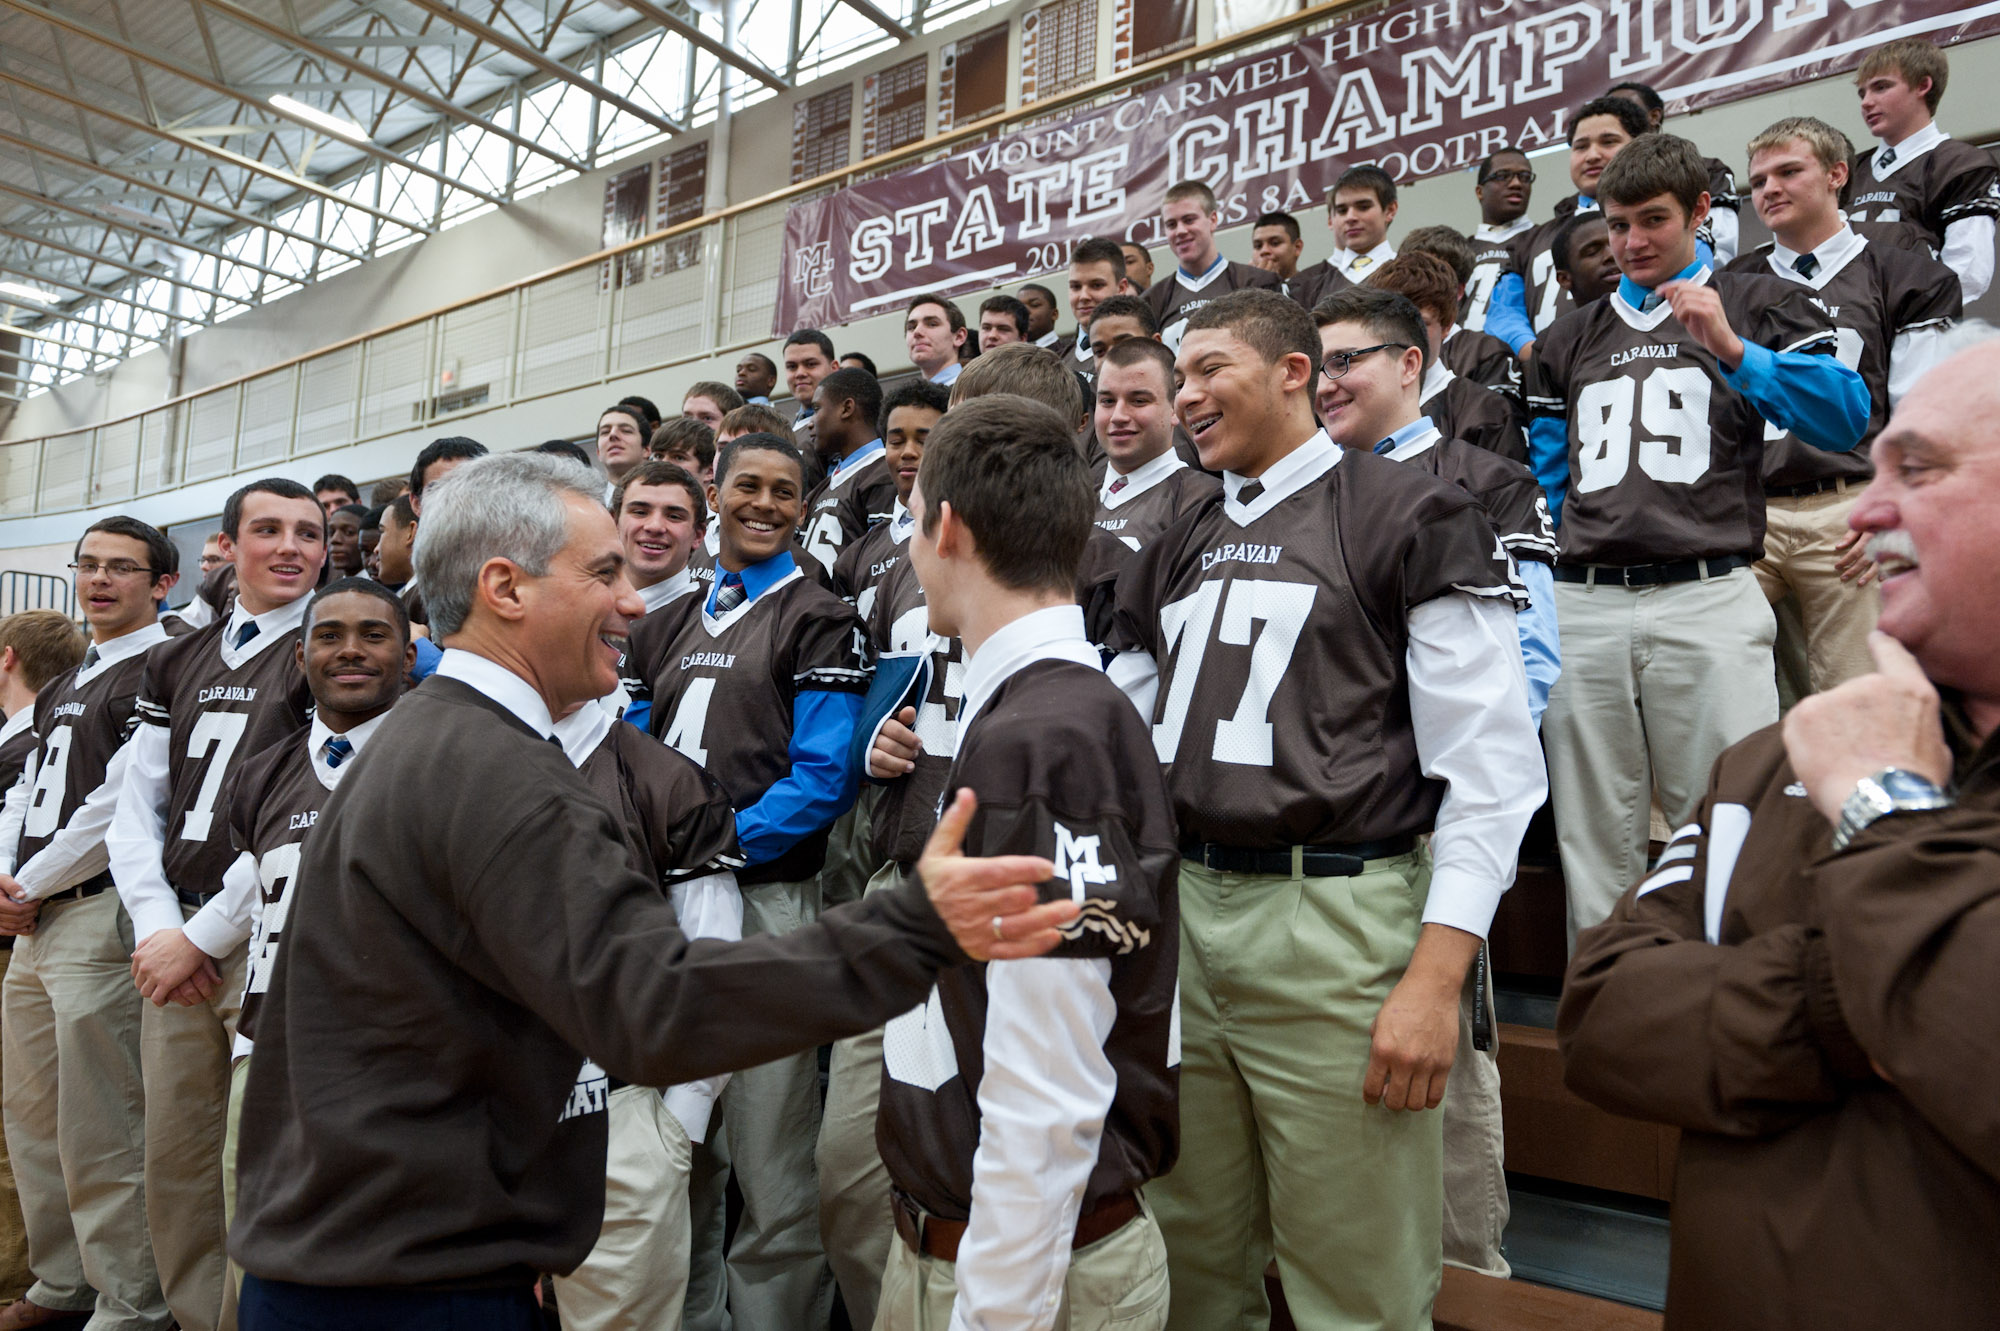 Mayor Emanuel Congratulates Mount Carmel Caravan Football Team On Winning the State Championship